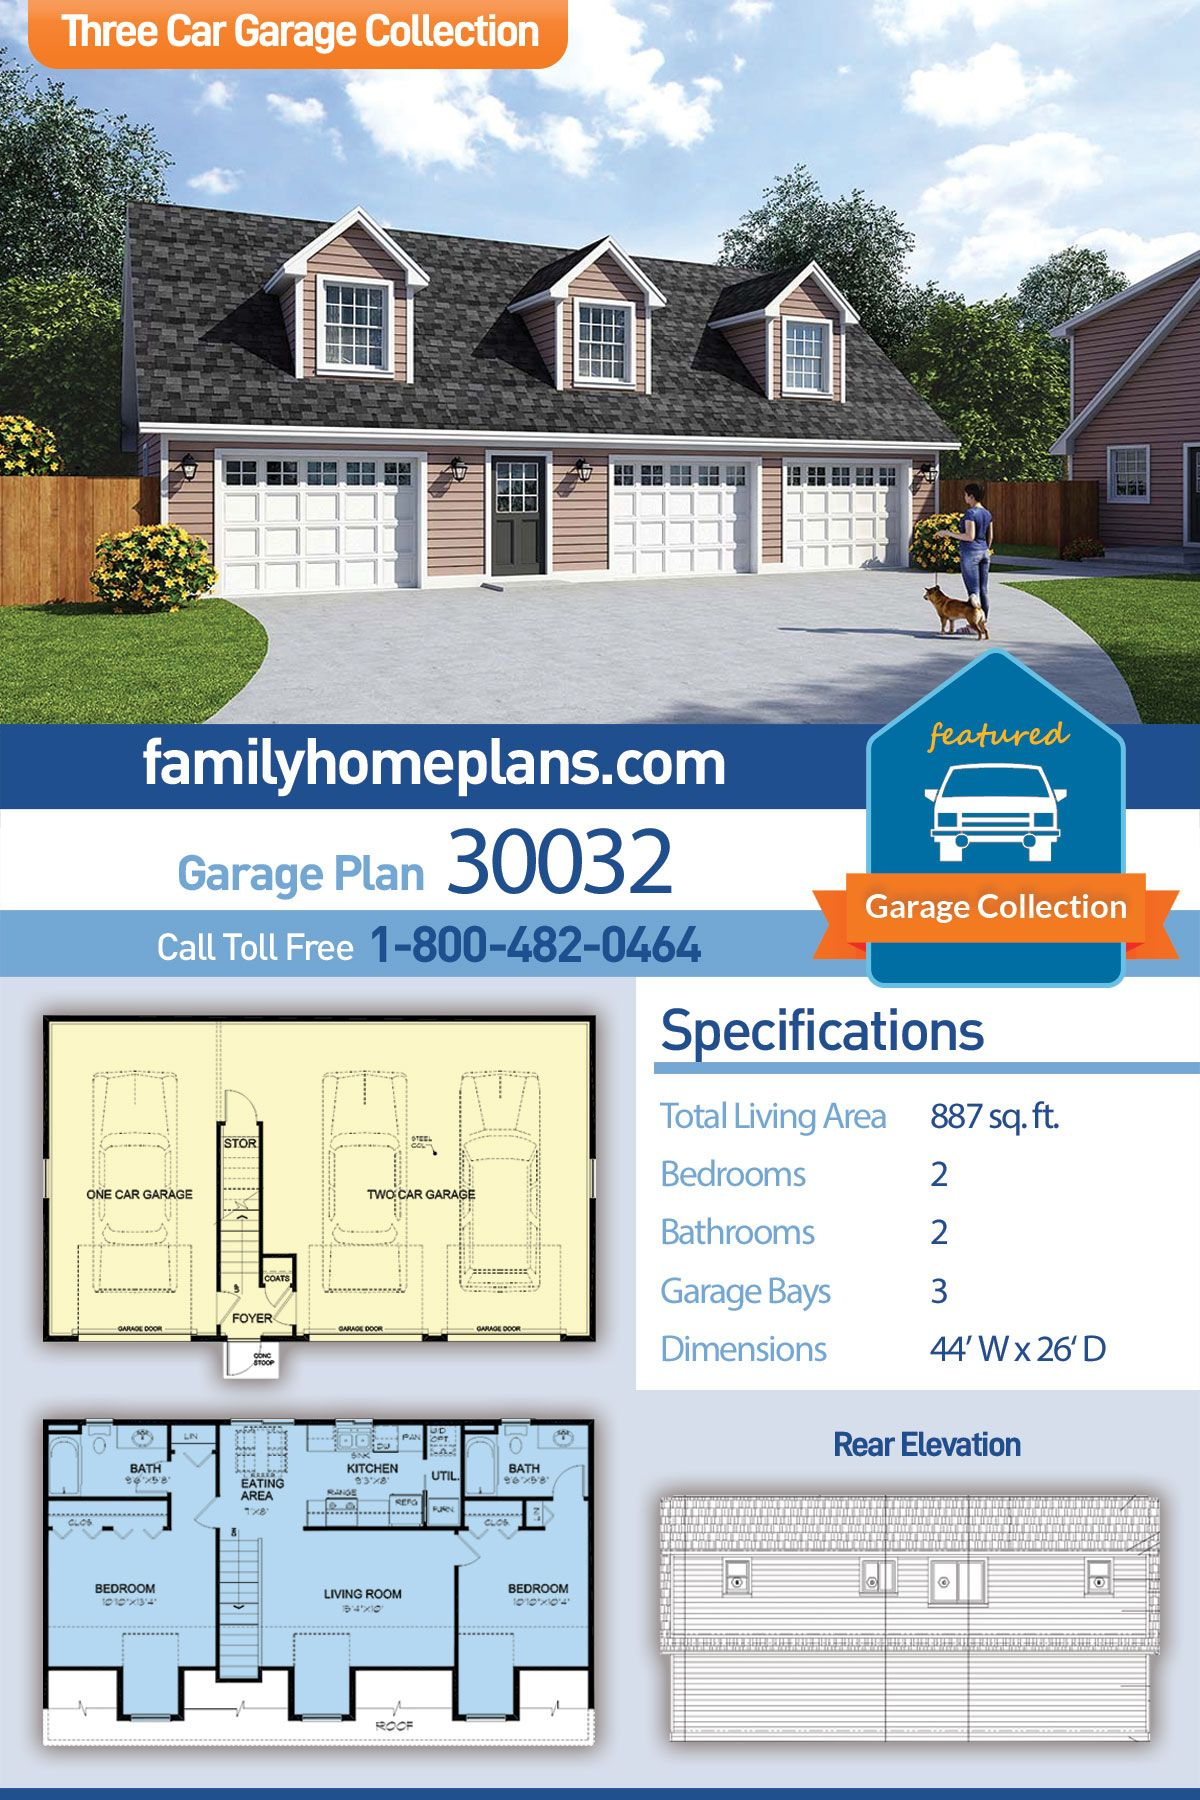 Garage Living Plan 94341 With 1 Bed 1 Bath 3 Car Garage Carriage House Plans Garage House Plans Garage Apartments